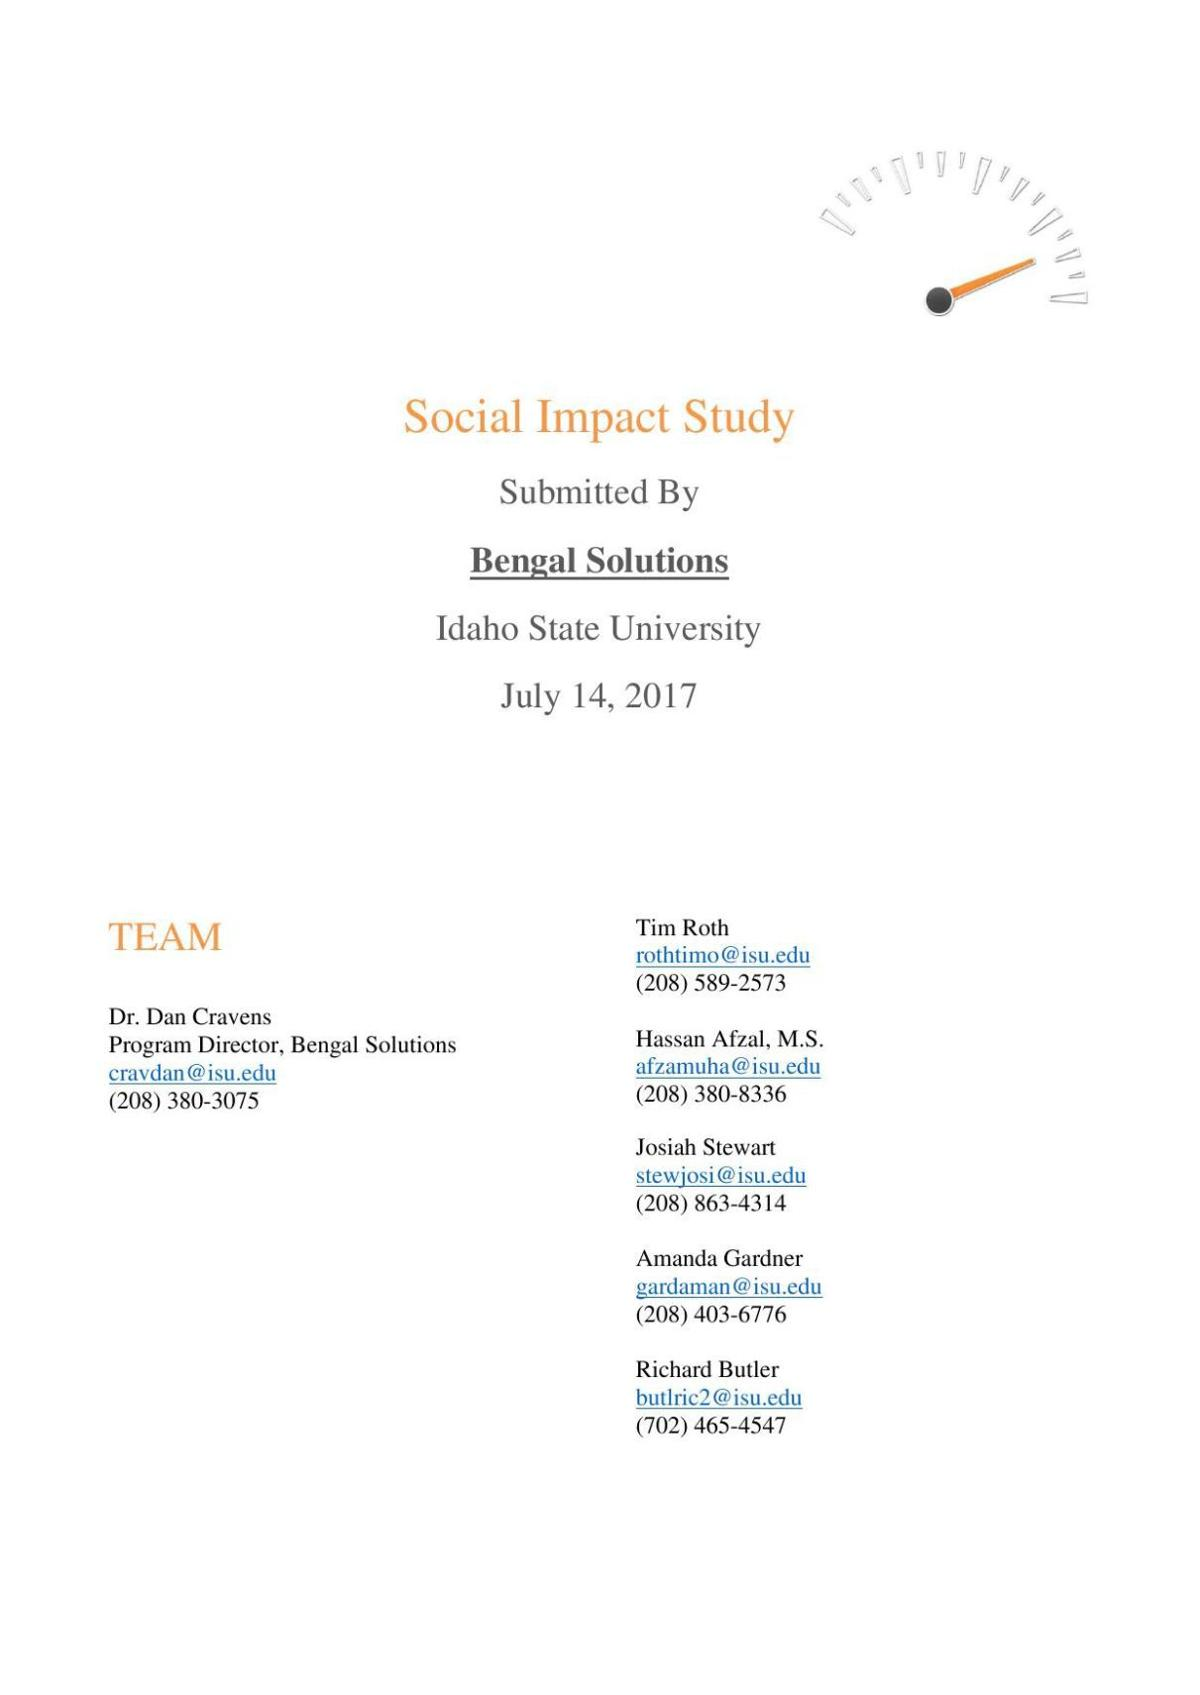 Social impact study, ITD headquarters